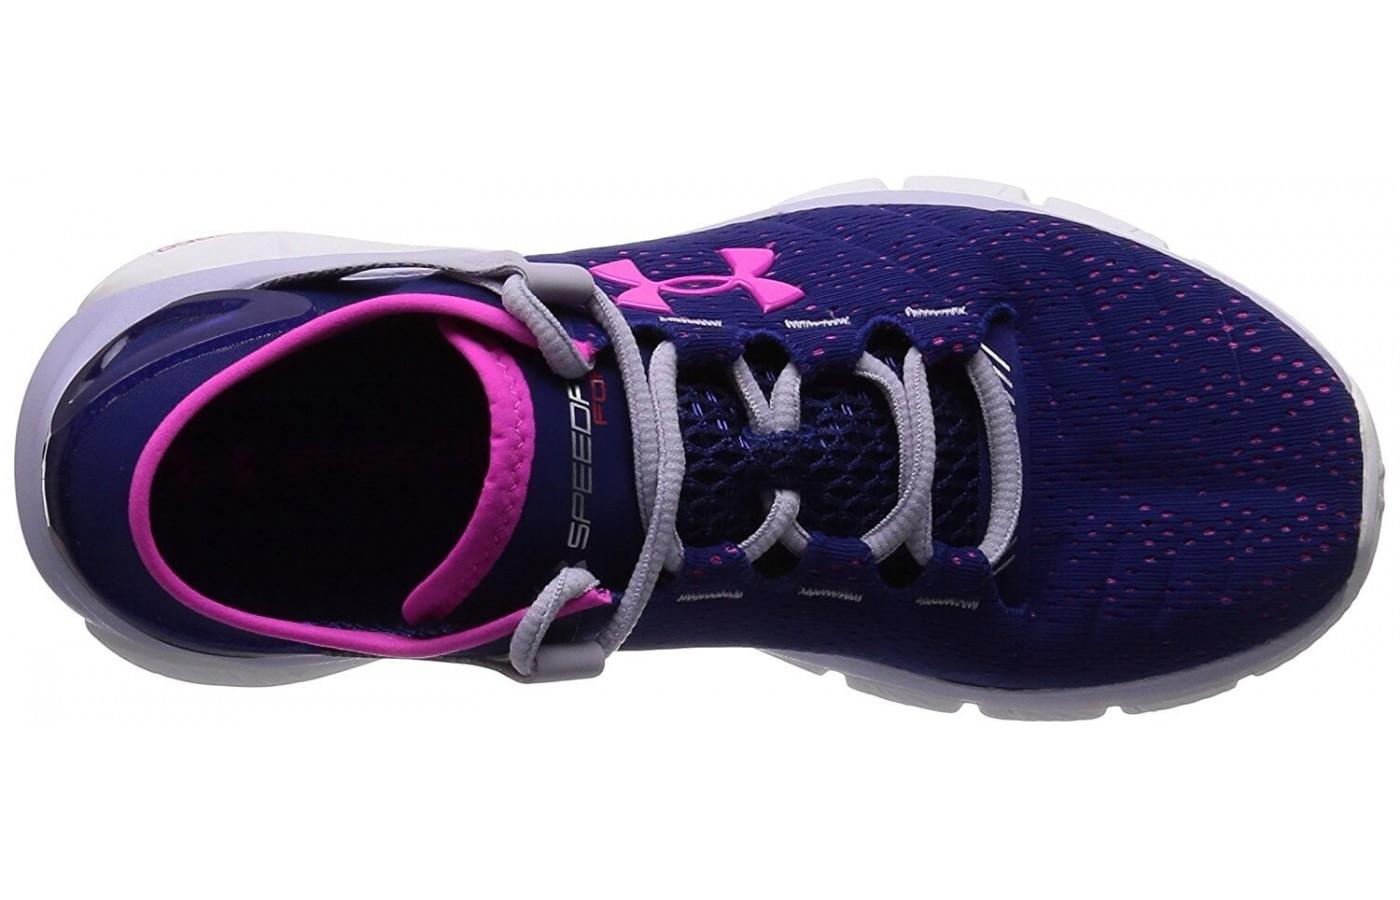 shot from above of the Under Armour SpeedForm Fortis